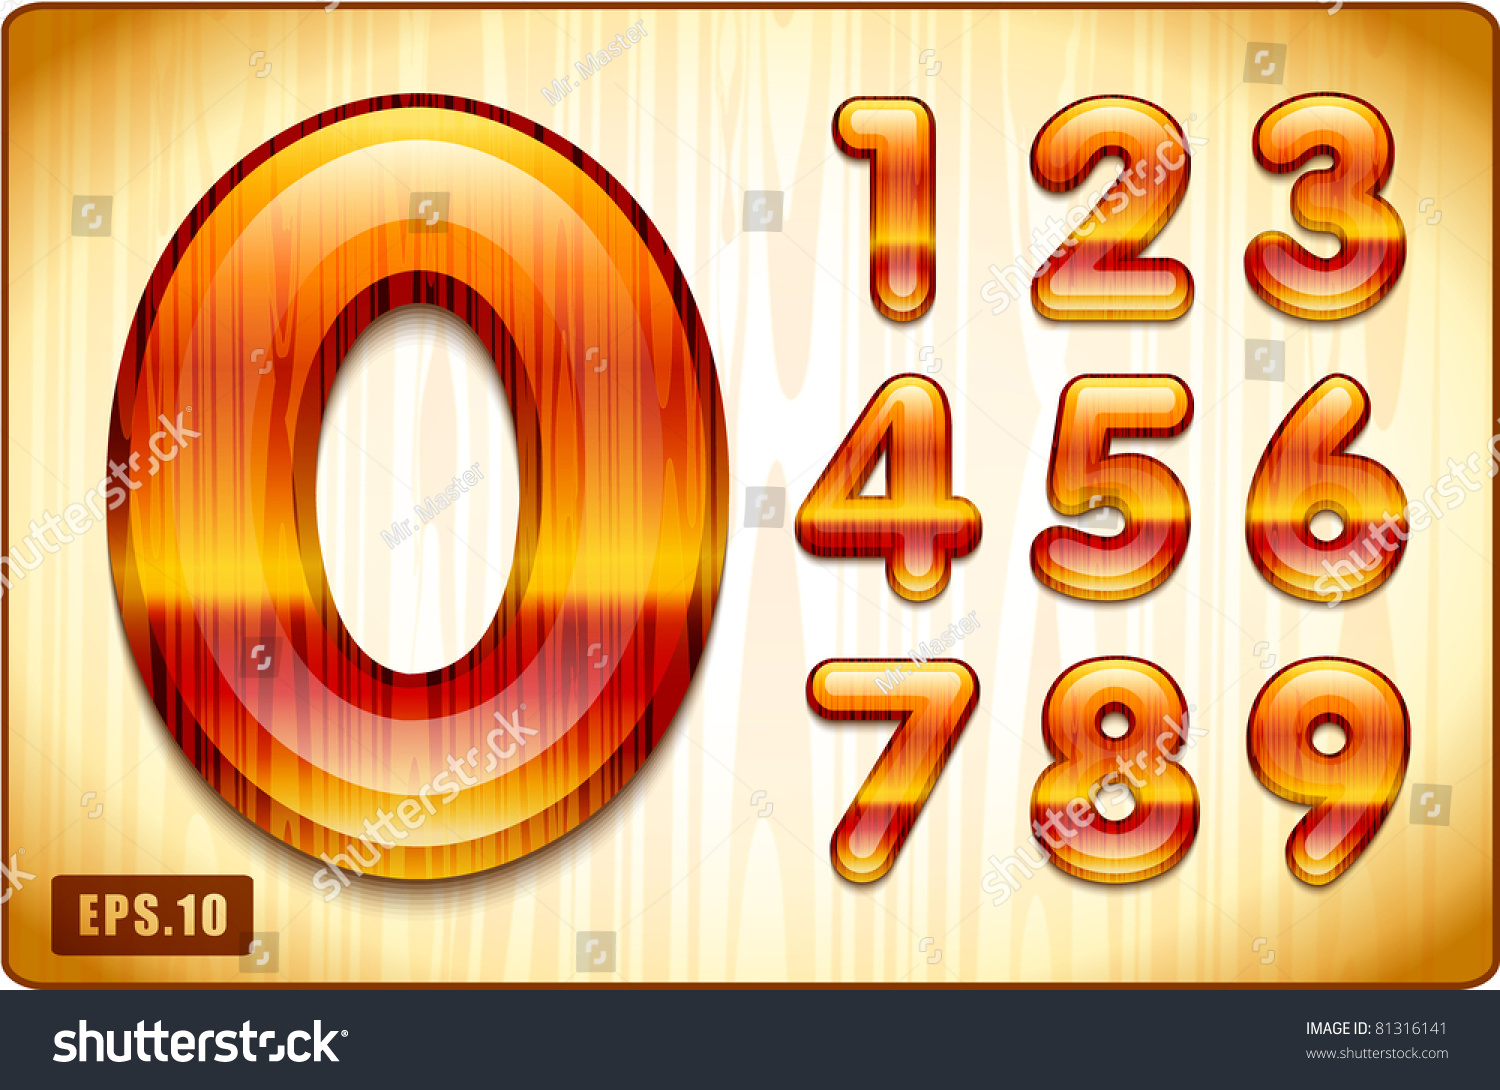 3d joyful decorative lacquer numbers expensive stock vector